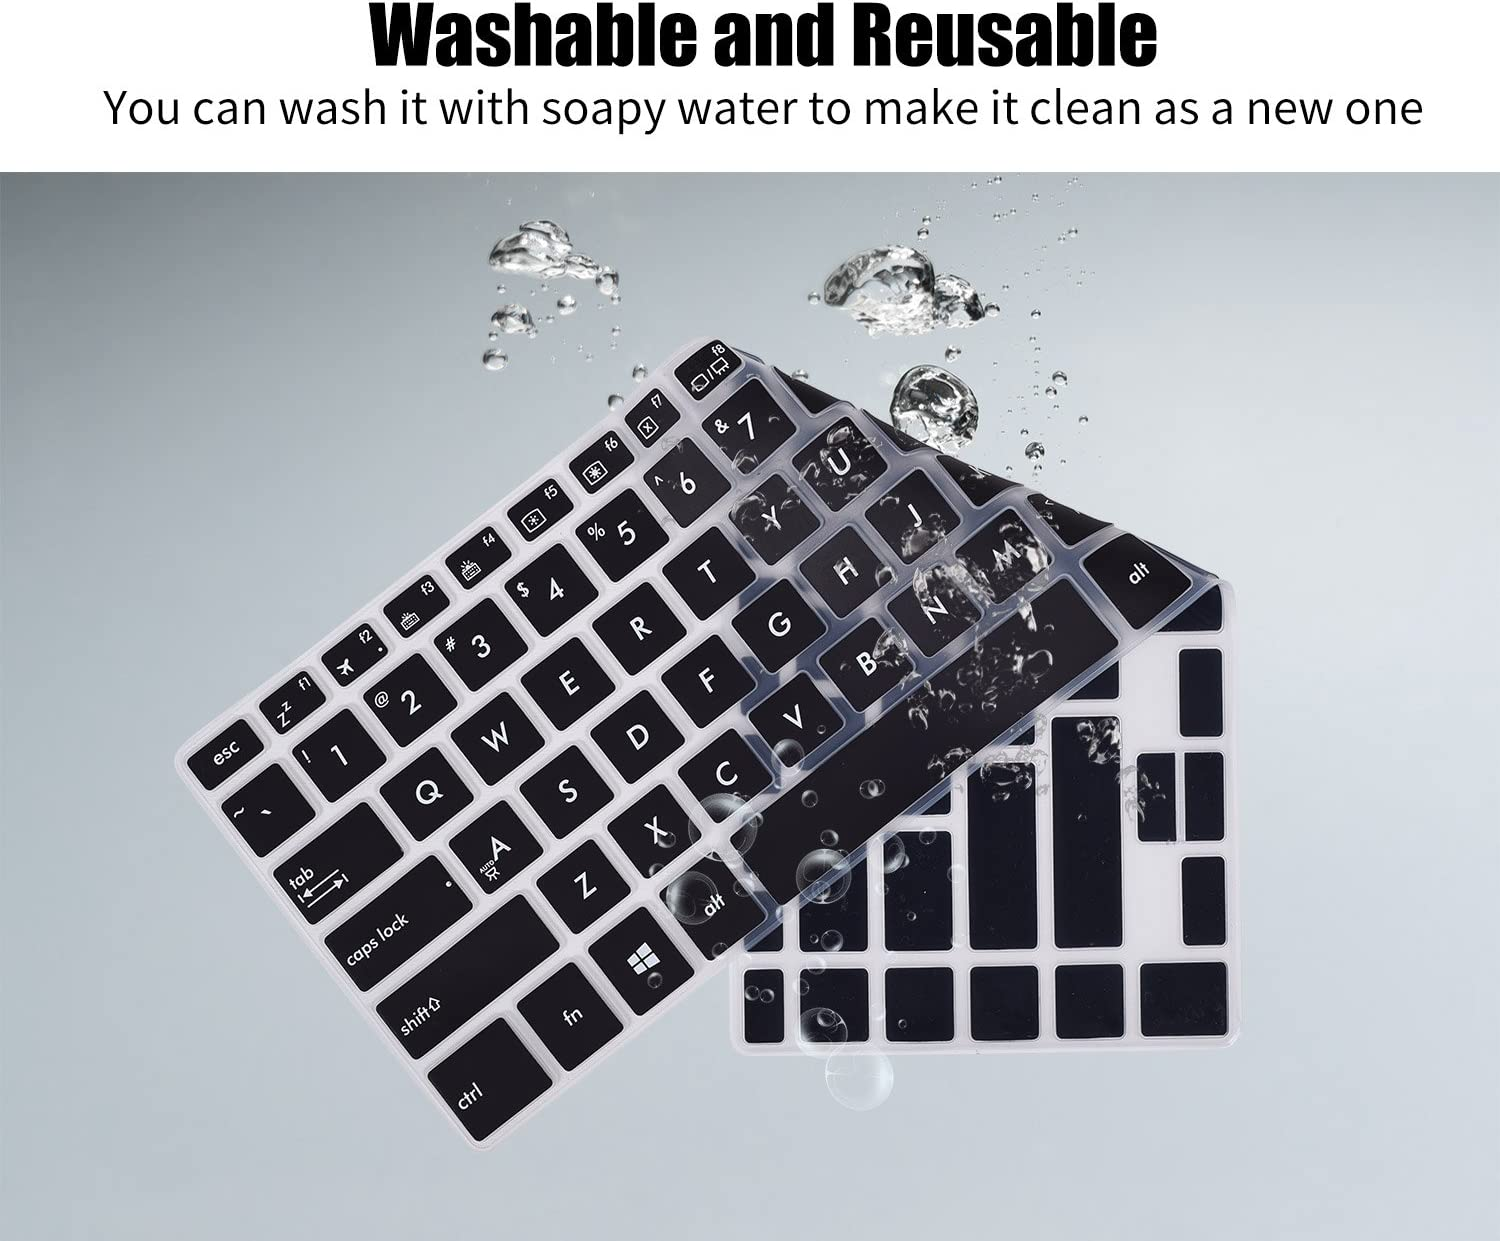 Clear Premium Ultra Thin Keyboard Cover for ASUS VivoBook F510UA FHD Laptop//F510UF//ASUS VivoBook S S510UA S510UN//ASUS S510UQ-EB76 15.6 Laptop Protective Skin